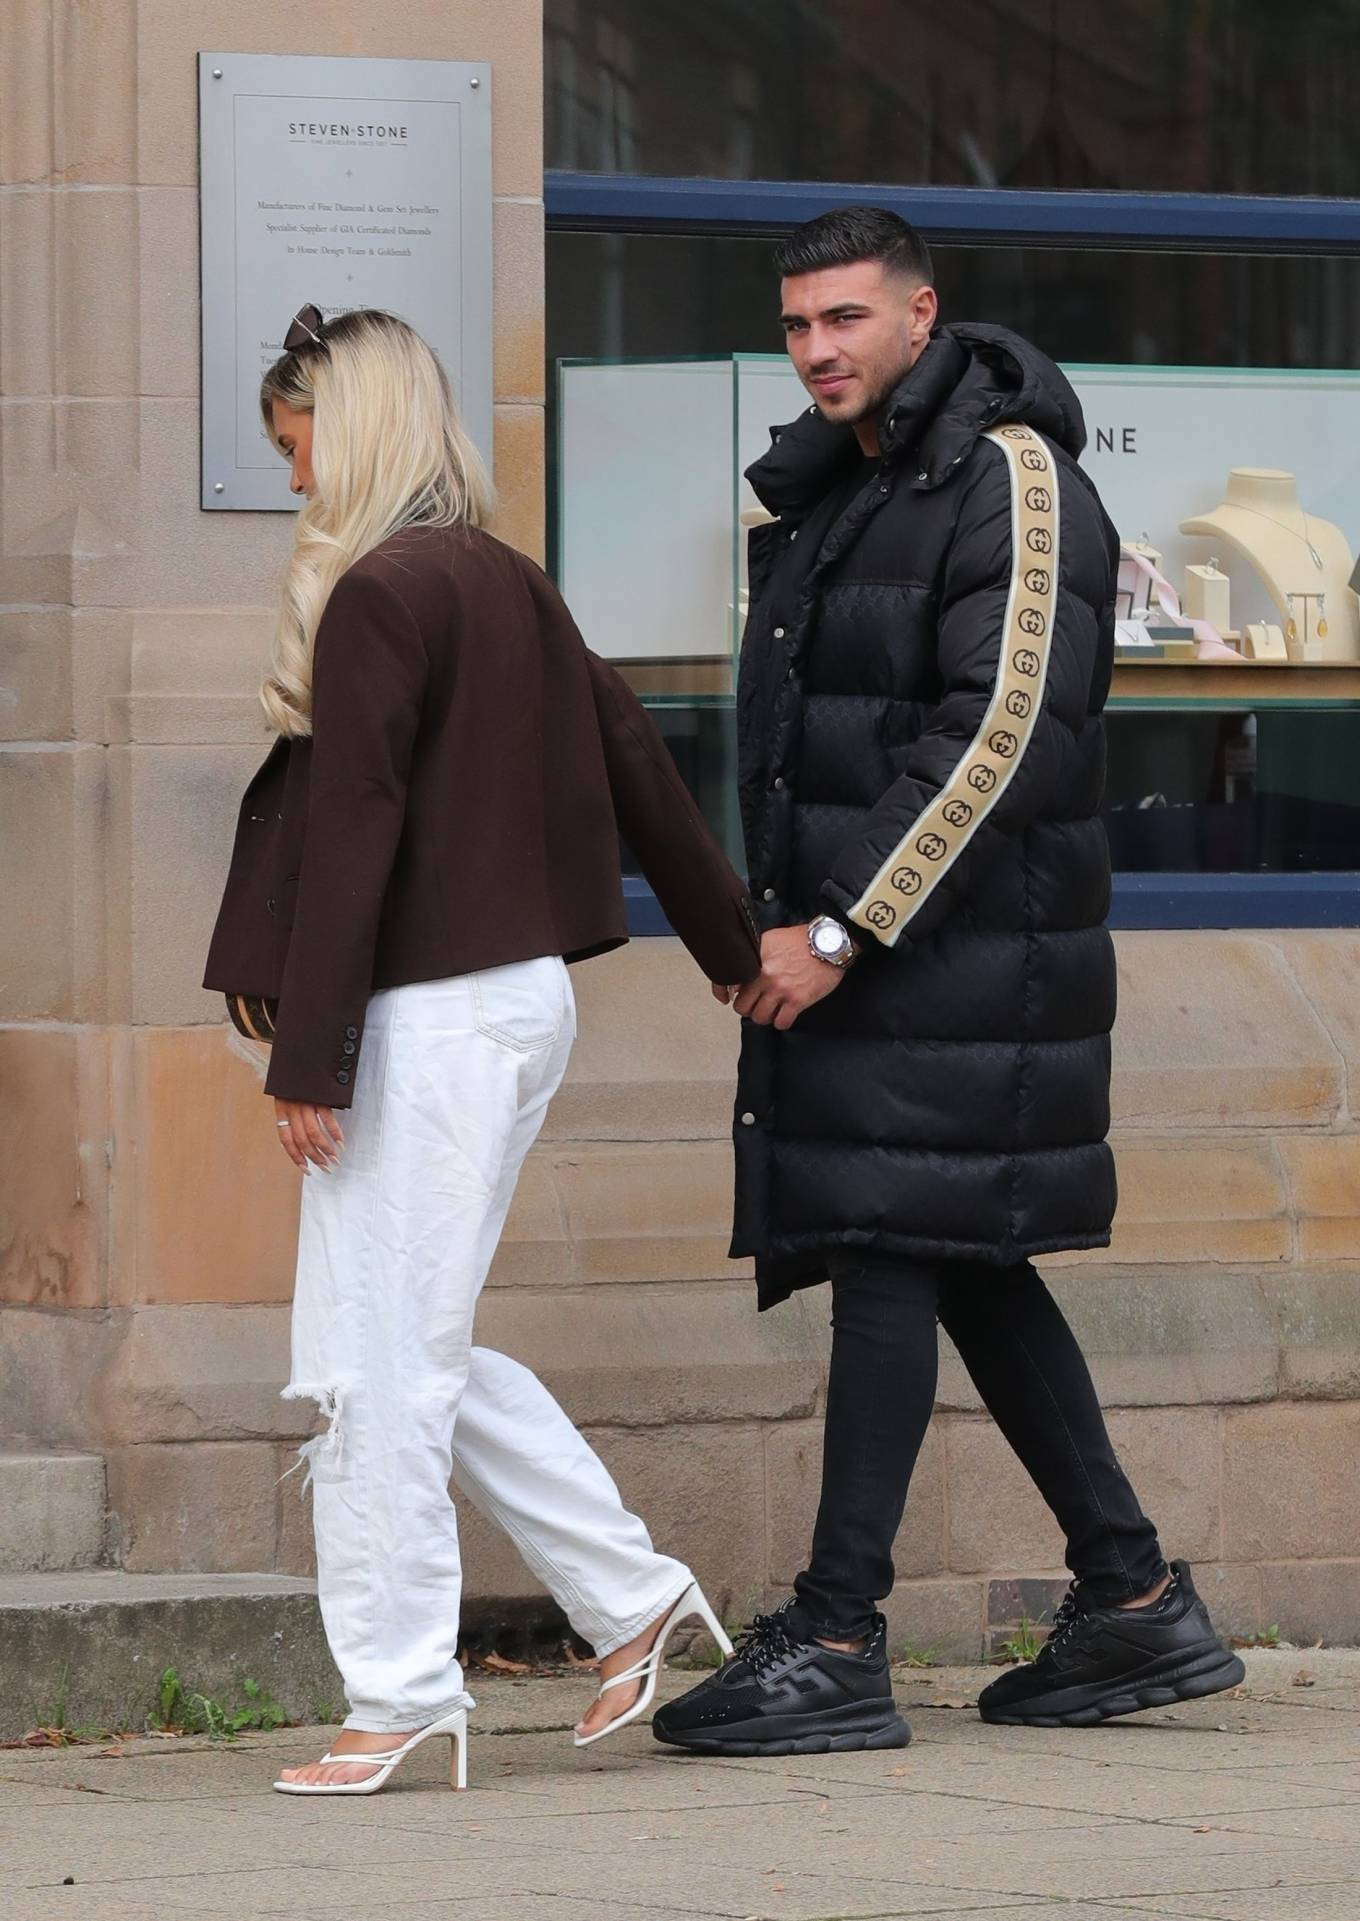 Molly-Mae Hague 2020 : Molly-Mae Hague and Tommy Fury – Seen while out in Cheshire -01